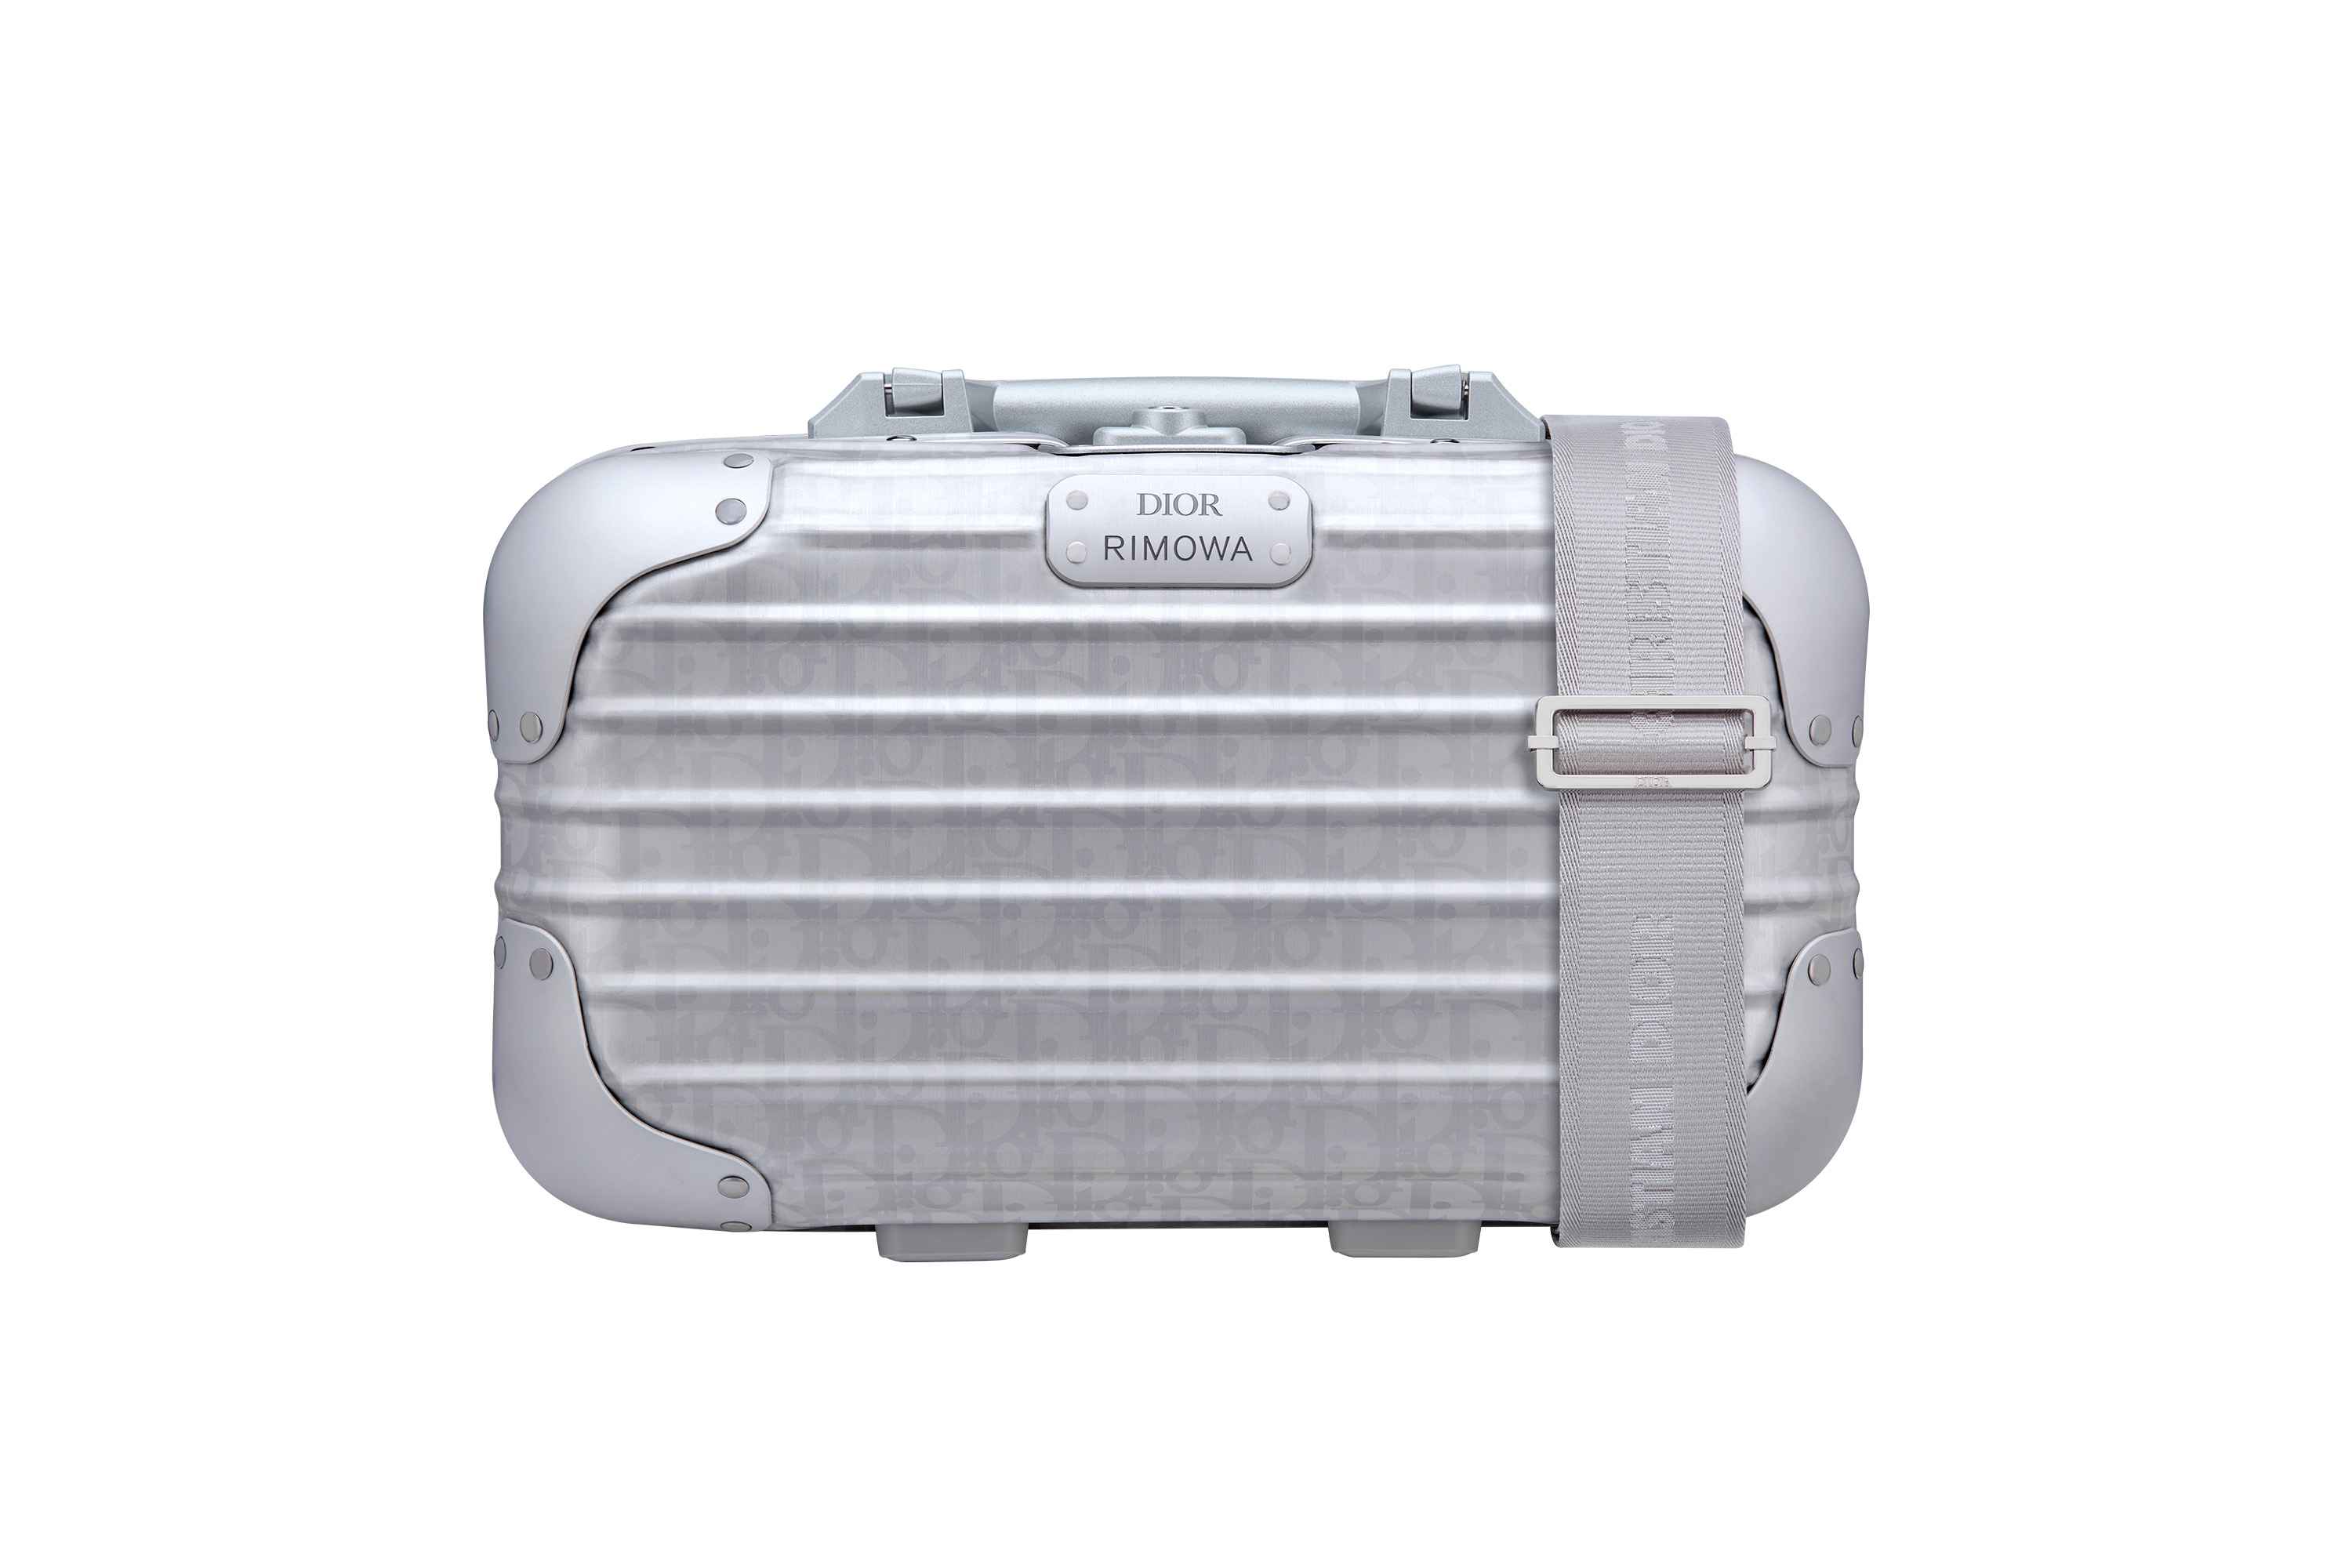 DIOR AND RIMOWA HANDCASE